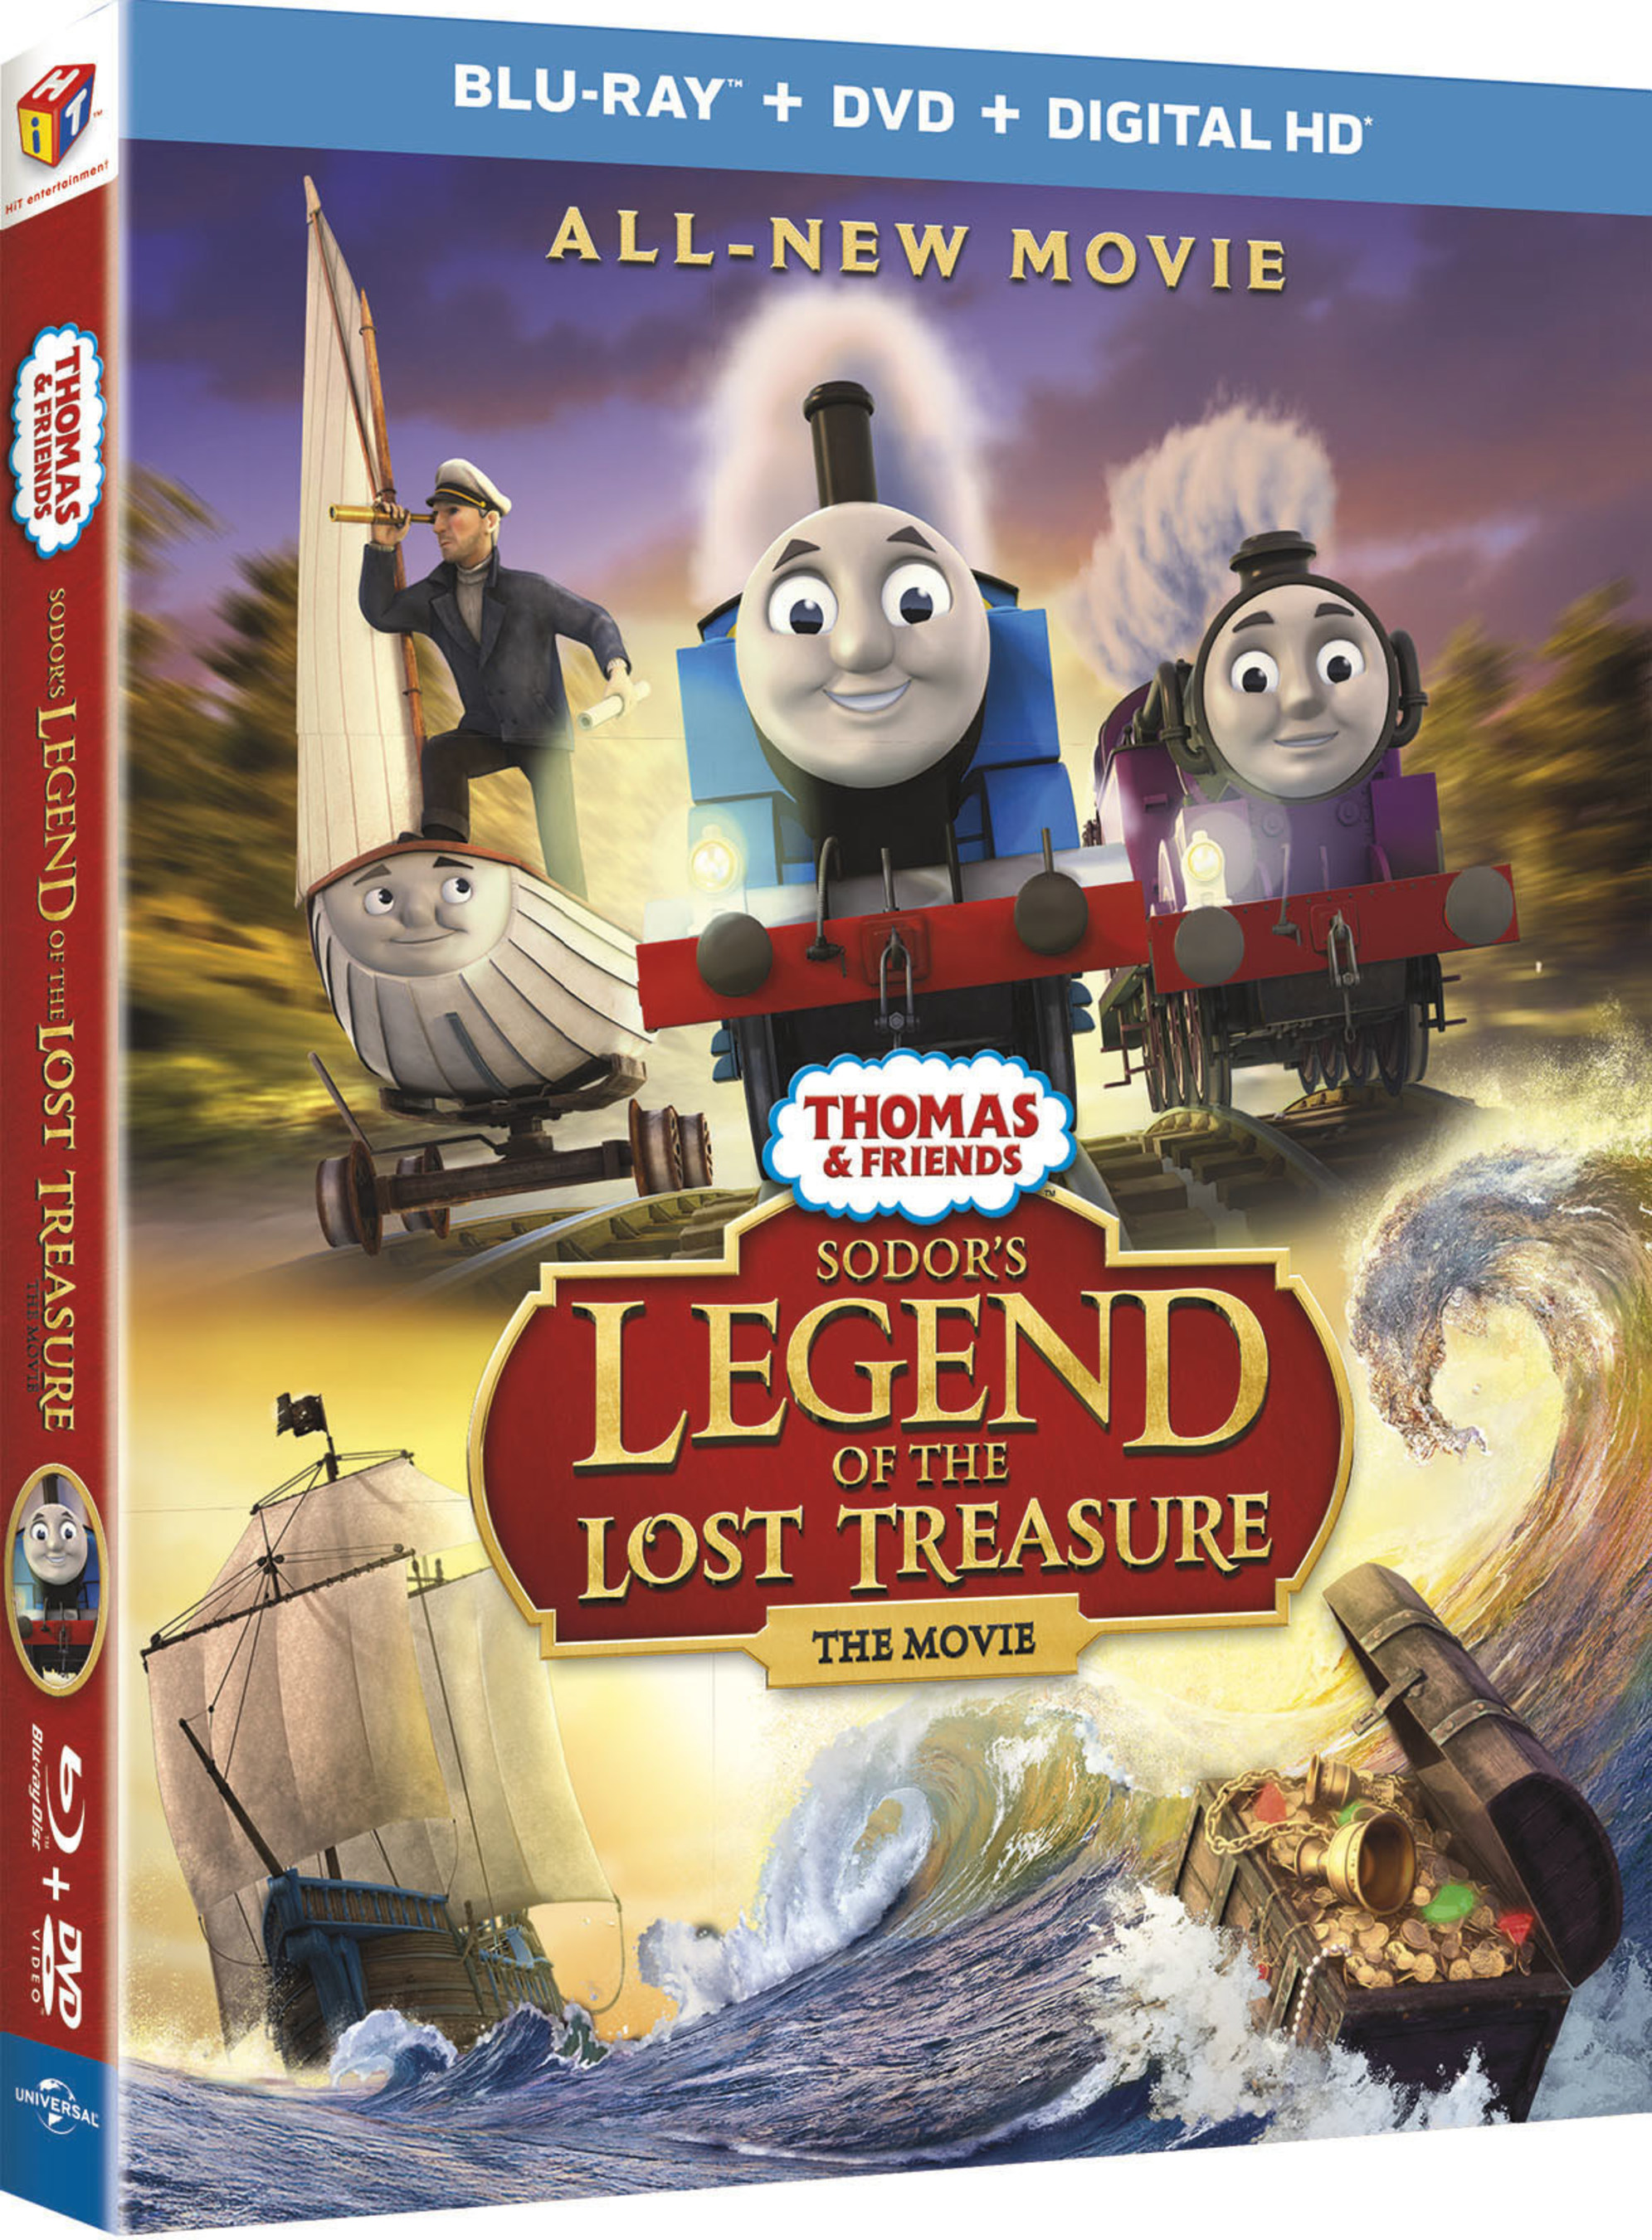 From Universal Pictures Home Entertainment: Thomas & Friends: Sodor's Legend of the Lost Treasure